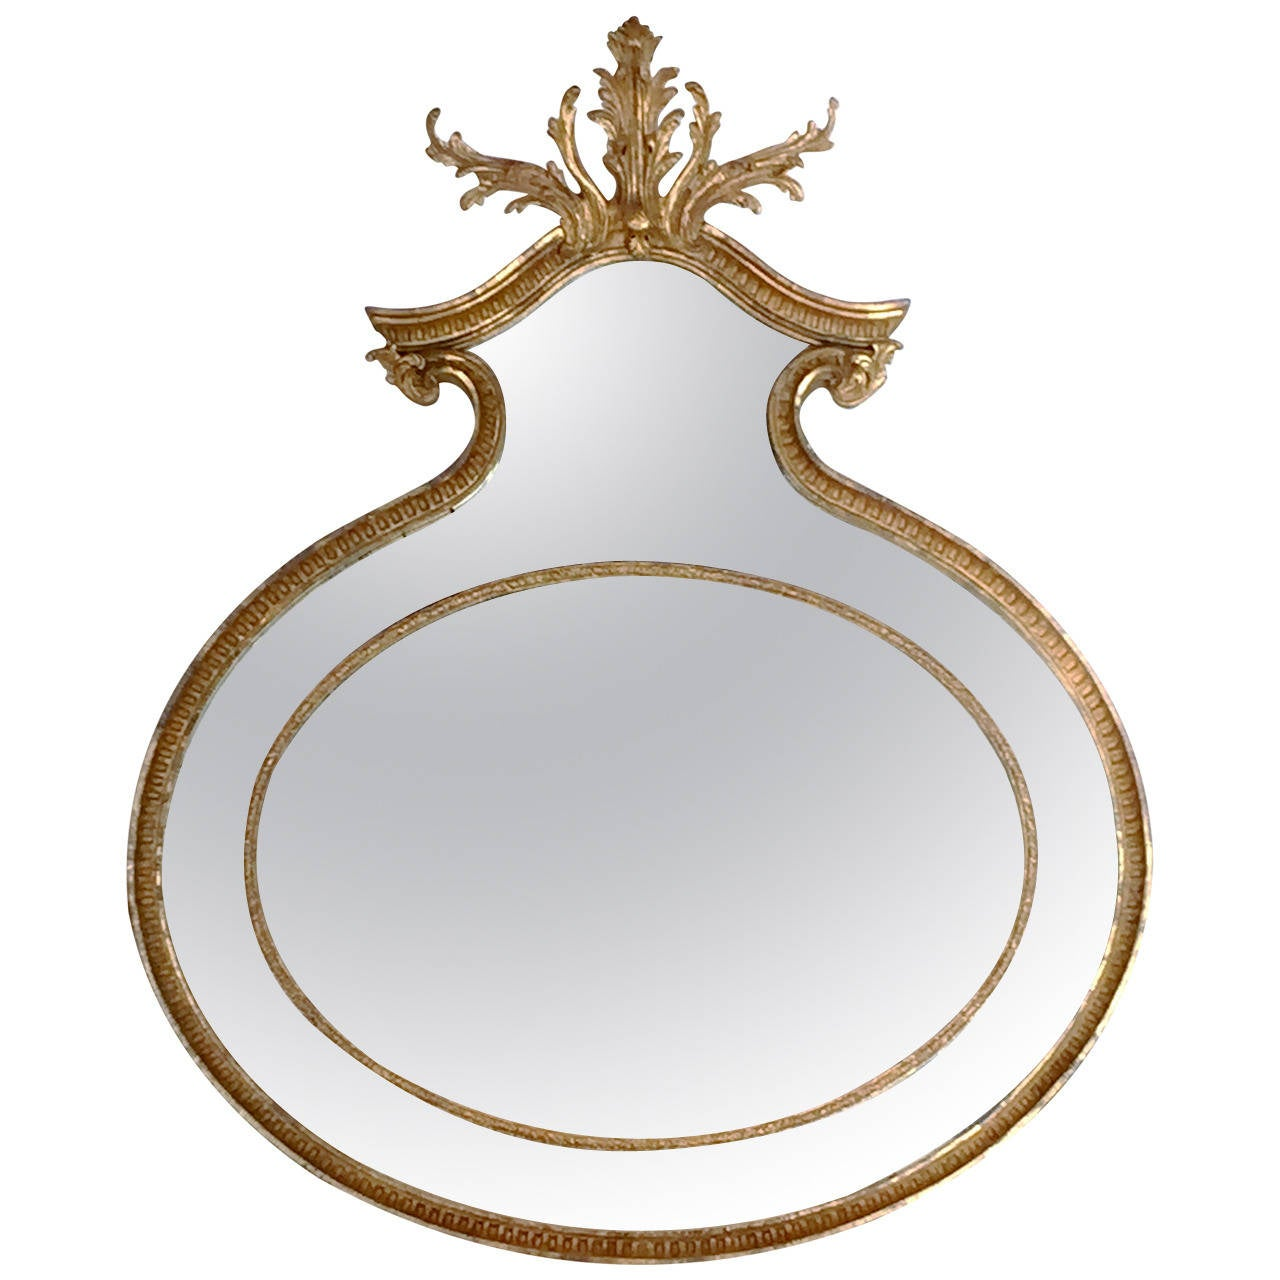 unusual adam oval giltwood mirror at 1stdibs